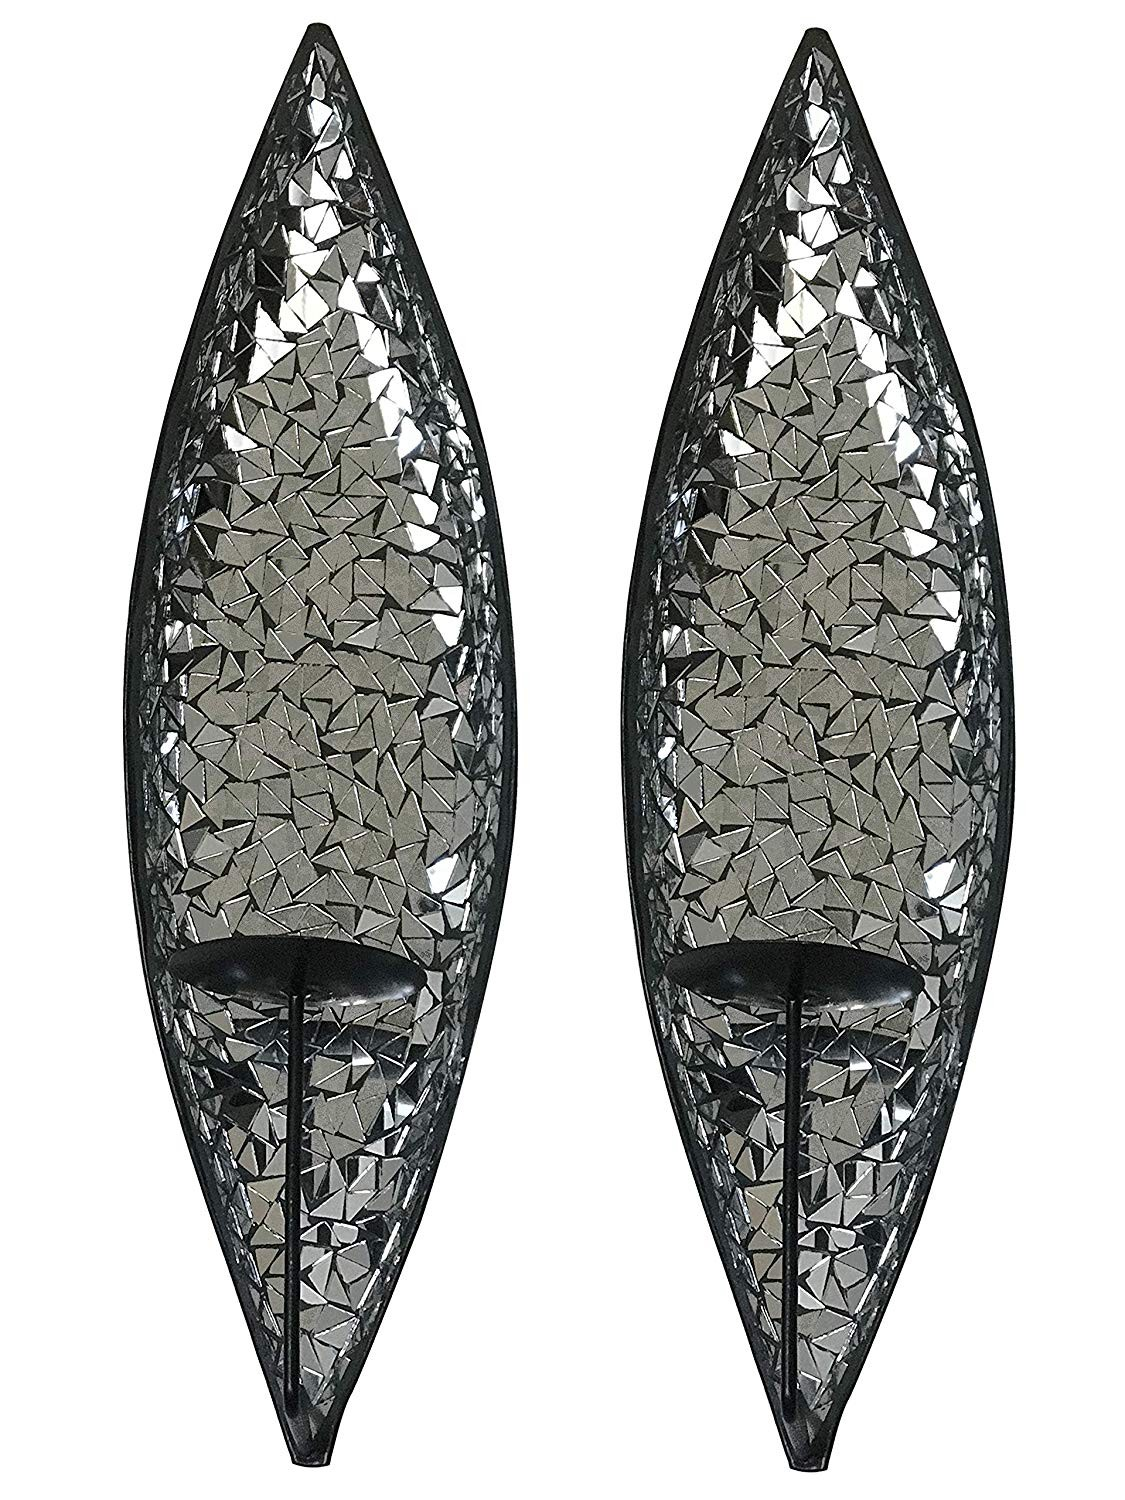 Decorshore Silver Lake Bella Palacio Mirrored Glass Mosaic Metal Wall Mounted Decorative Candle Holder Wall Sconce Set Of 2 Large Size 18 In Light Weight Wall Decor Decorshore